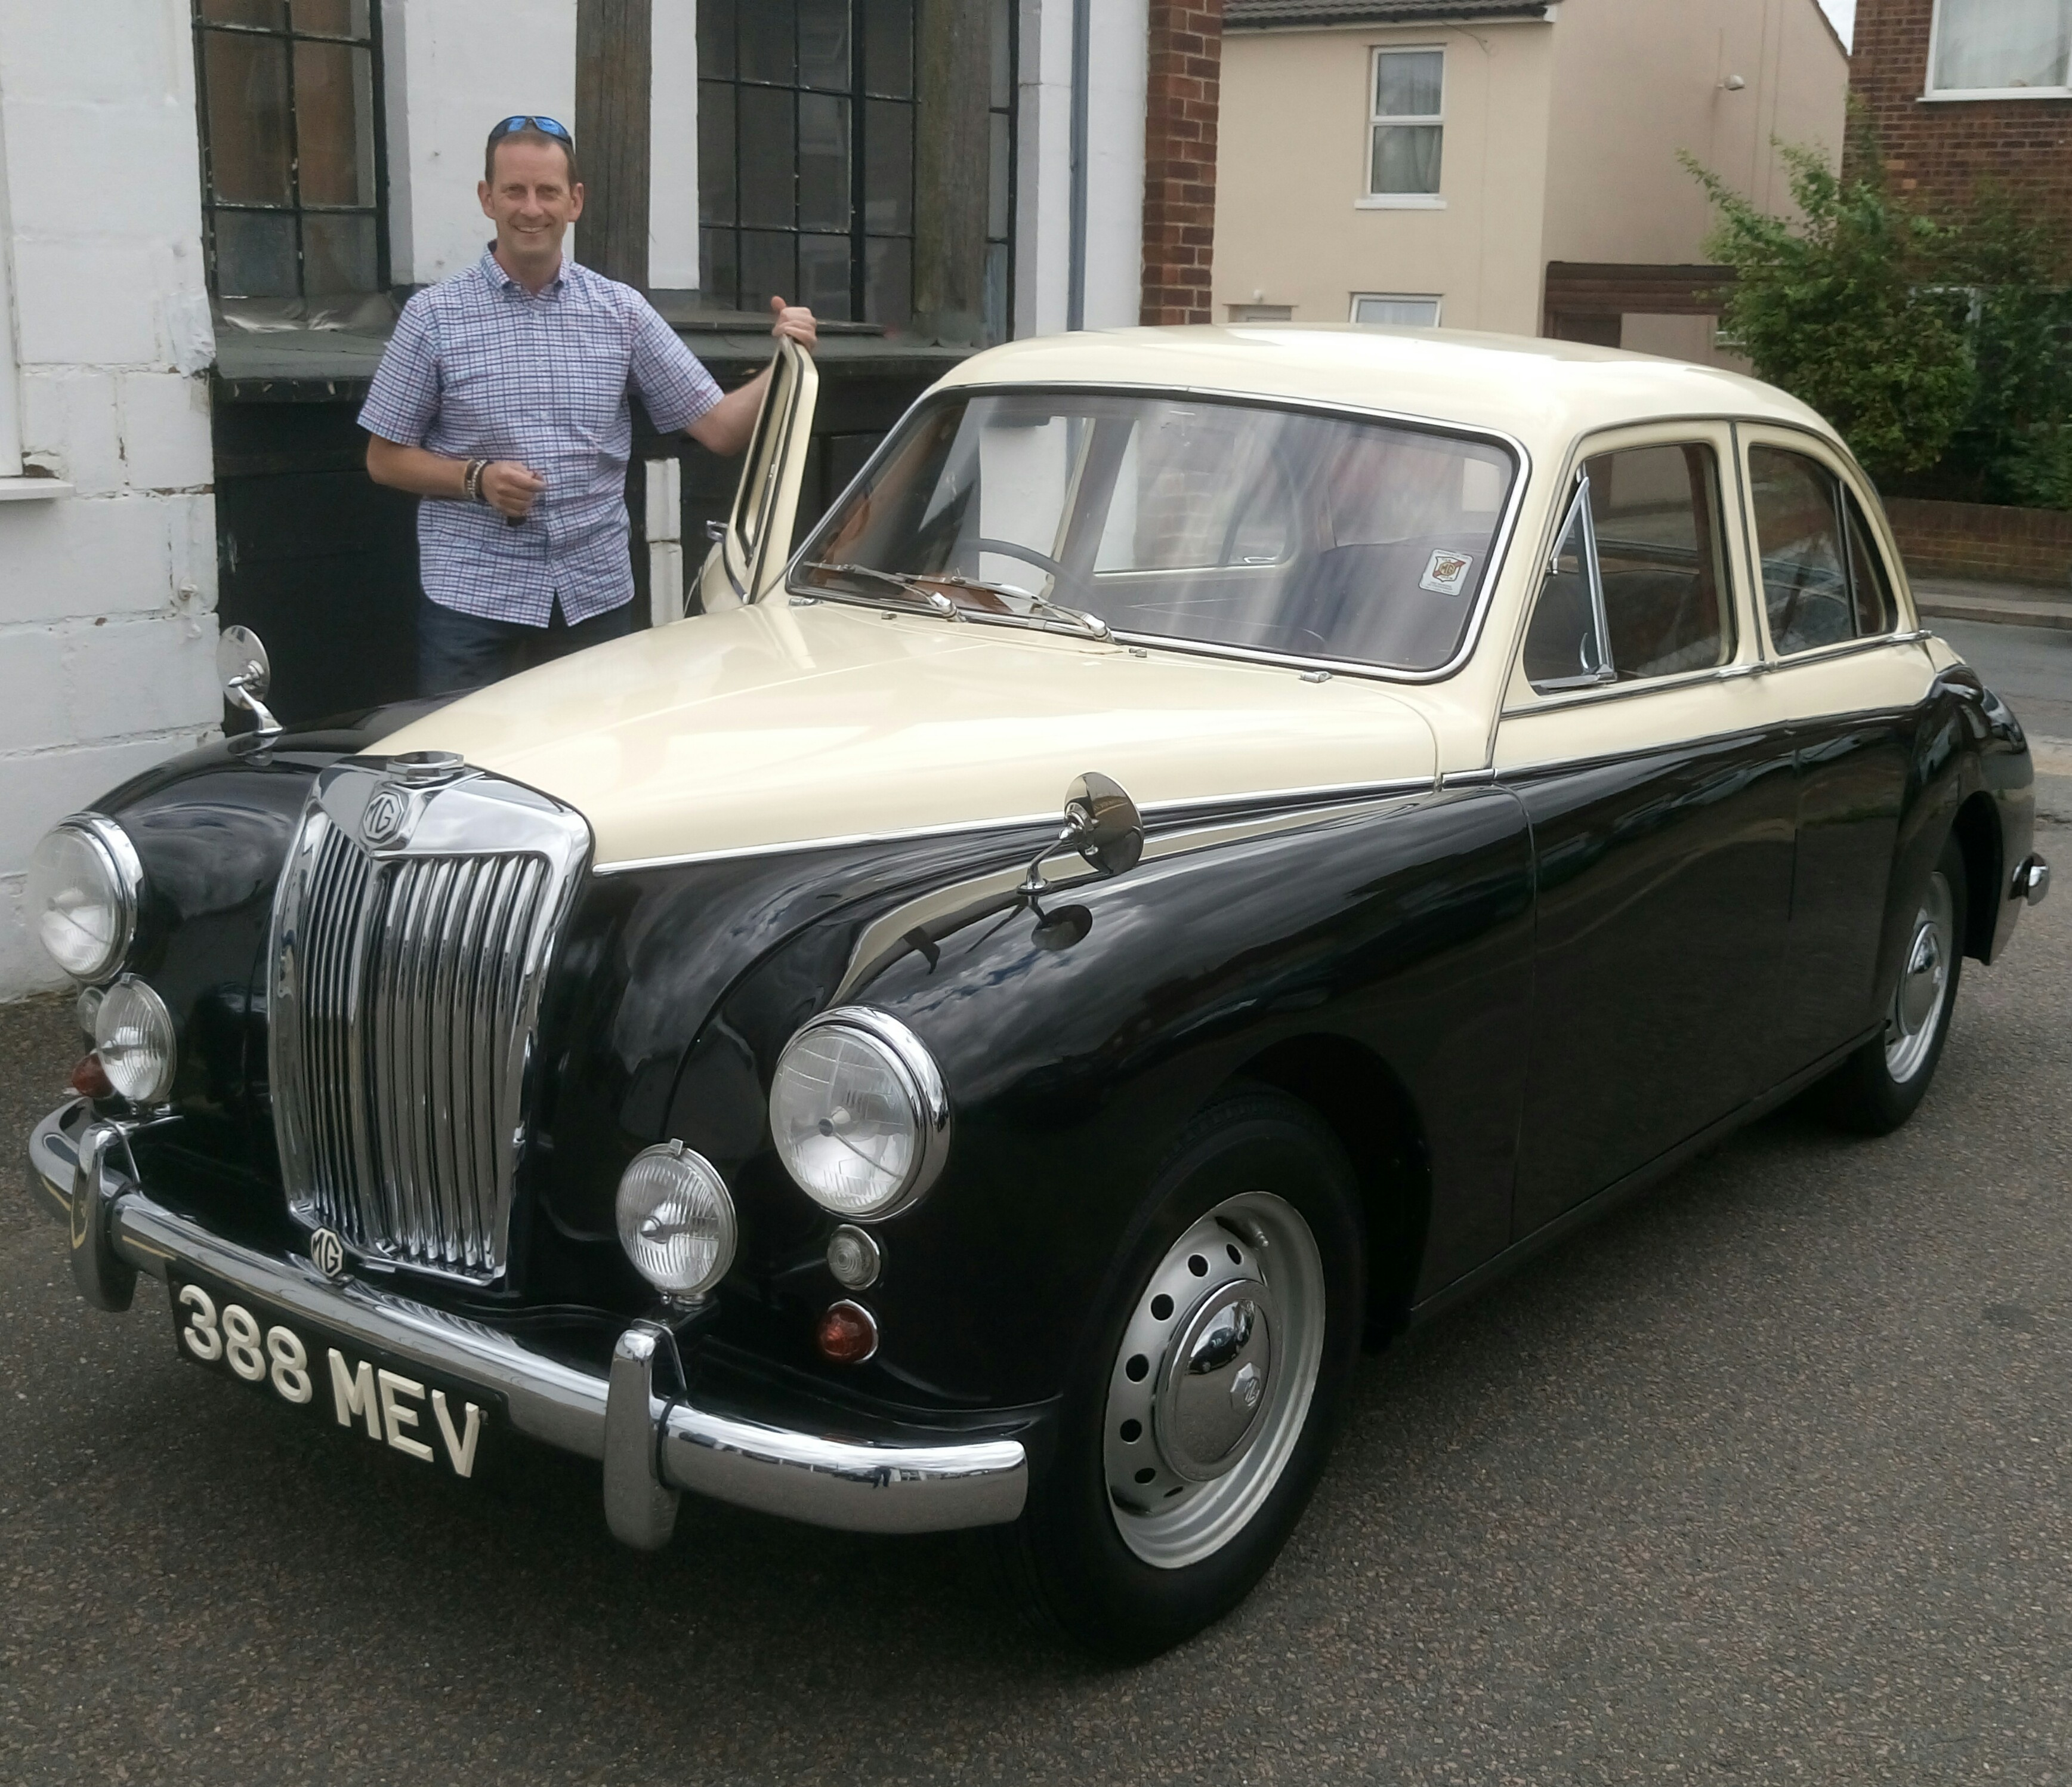 Mr Gladwin Collecting His MG Magnette